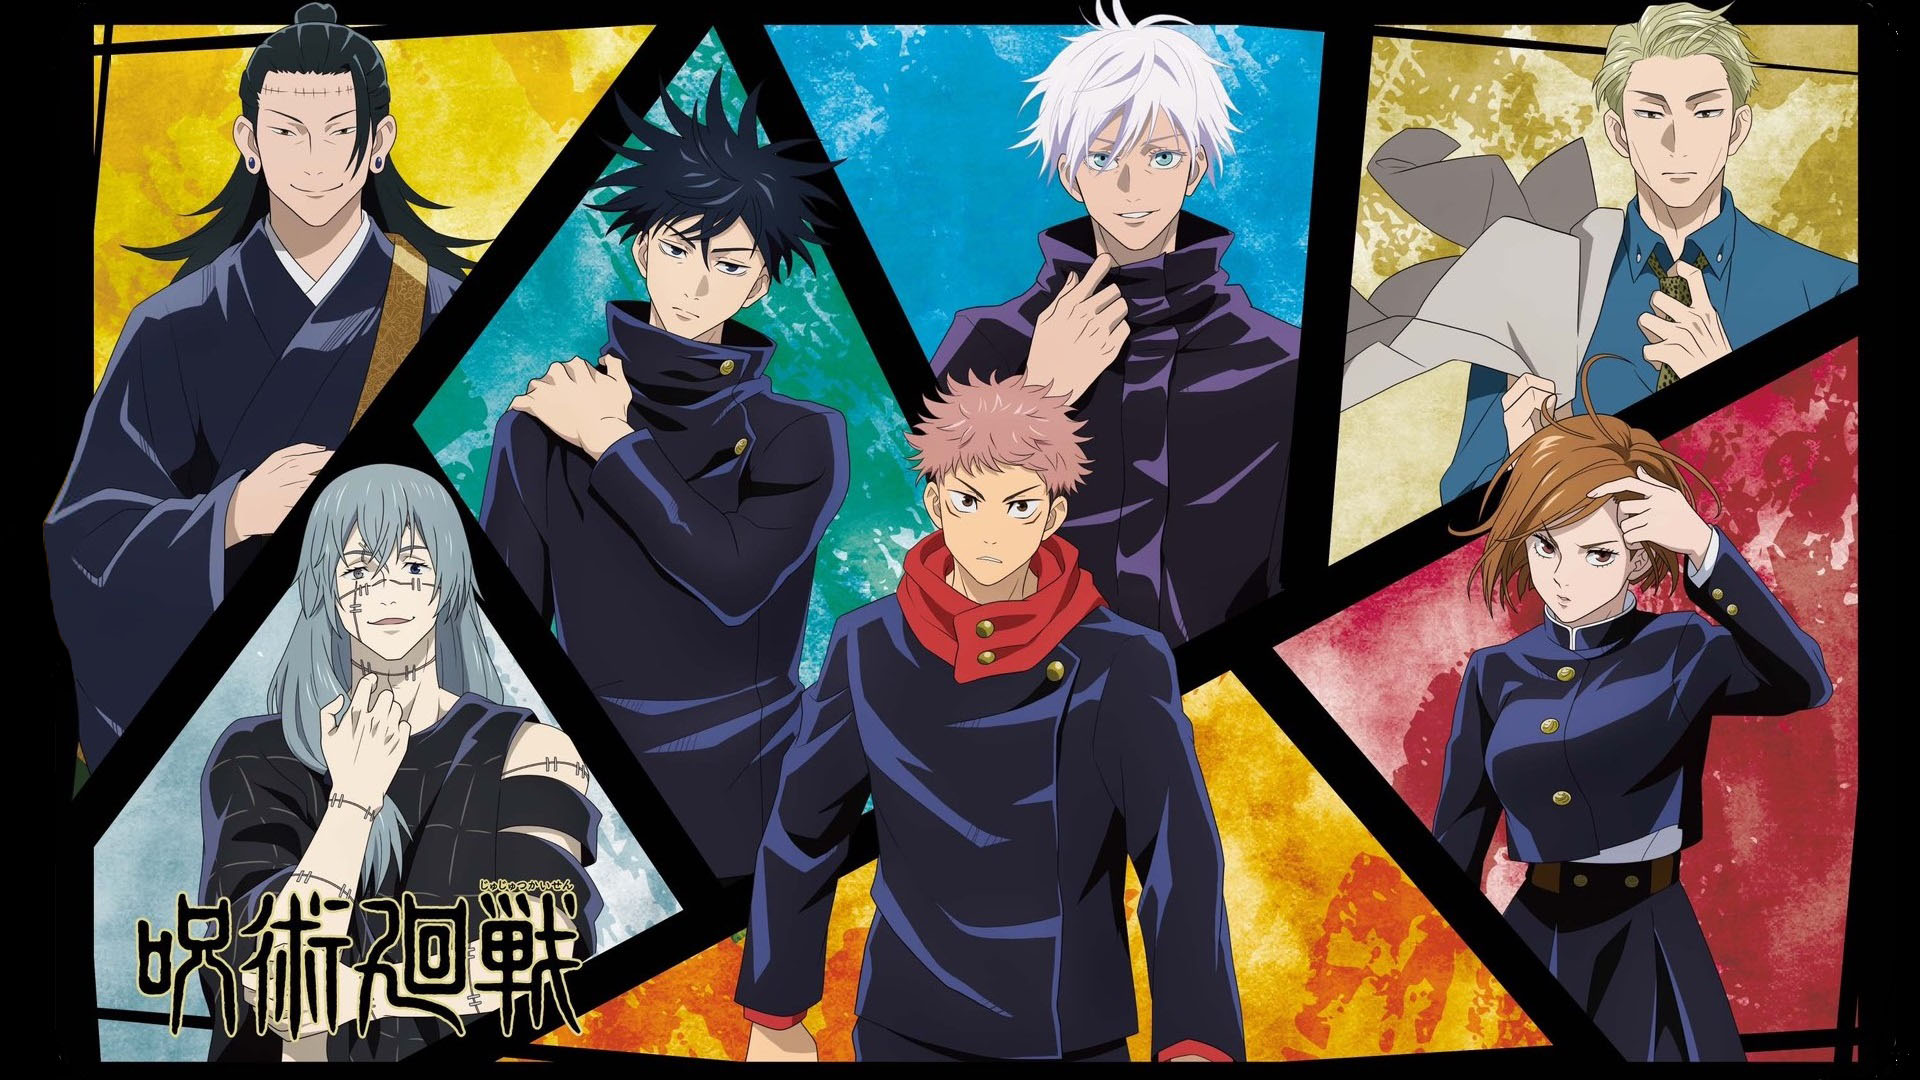 Jujutsu Kaisen Chapter 142 Release Date, Raw Scans and Read Online